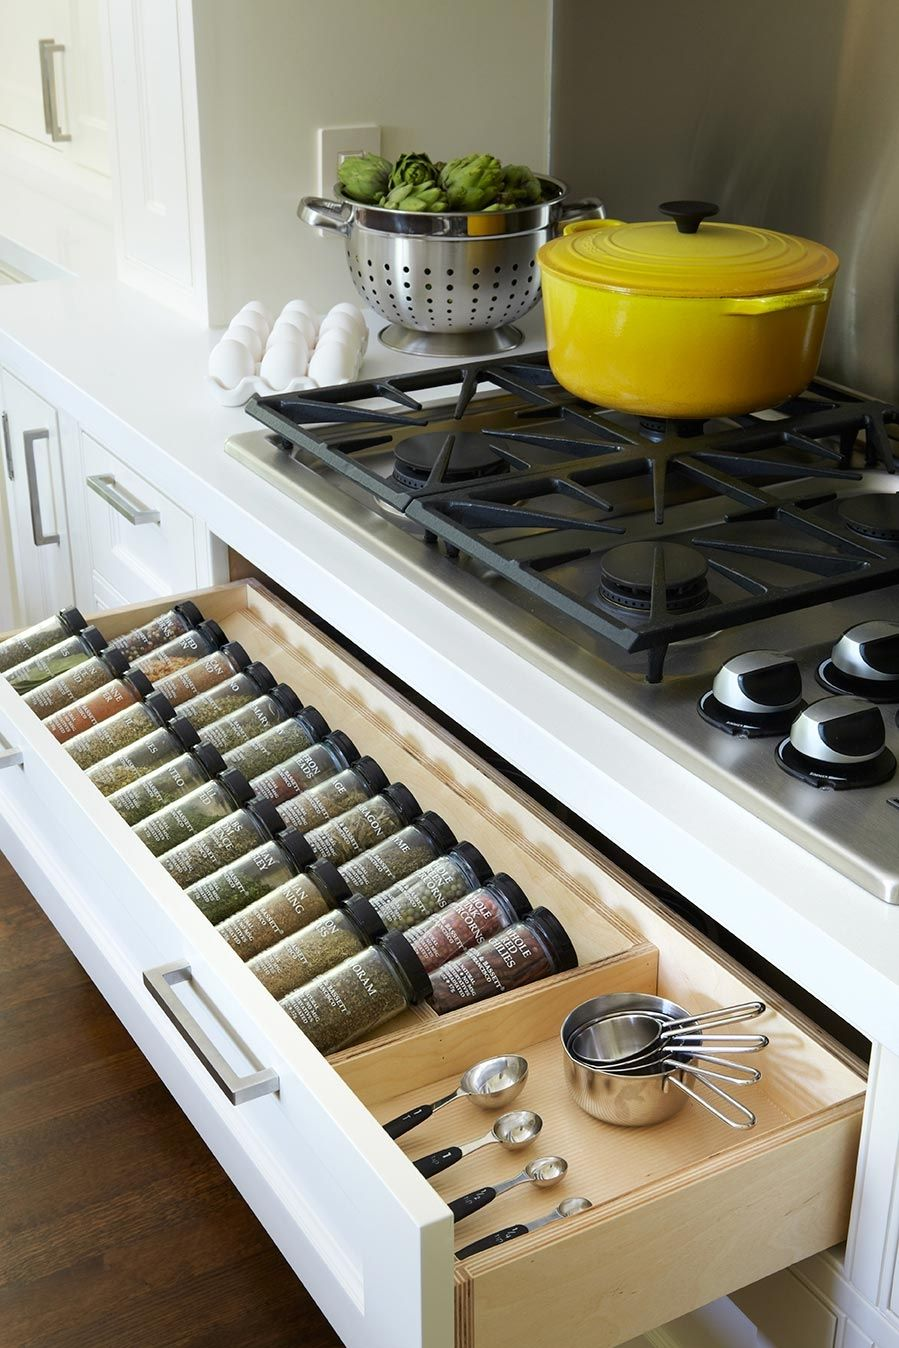 spice drawer | ideas to think about | Pinterest | Spice drawer ...